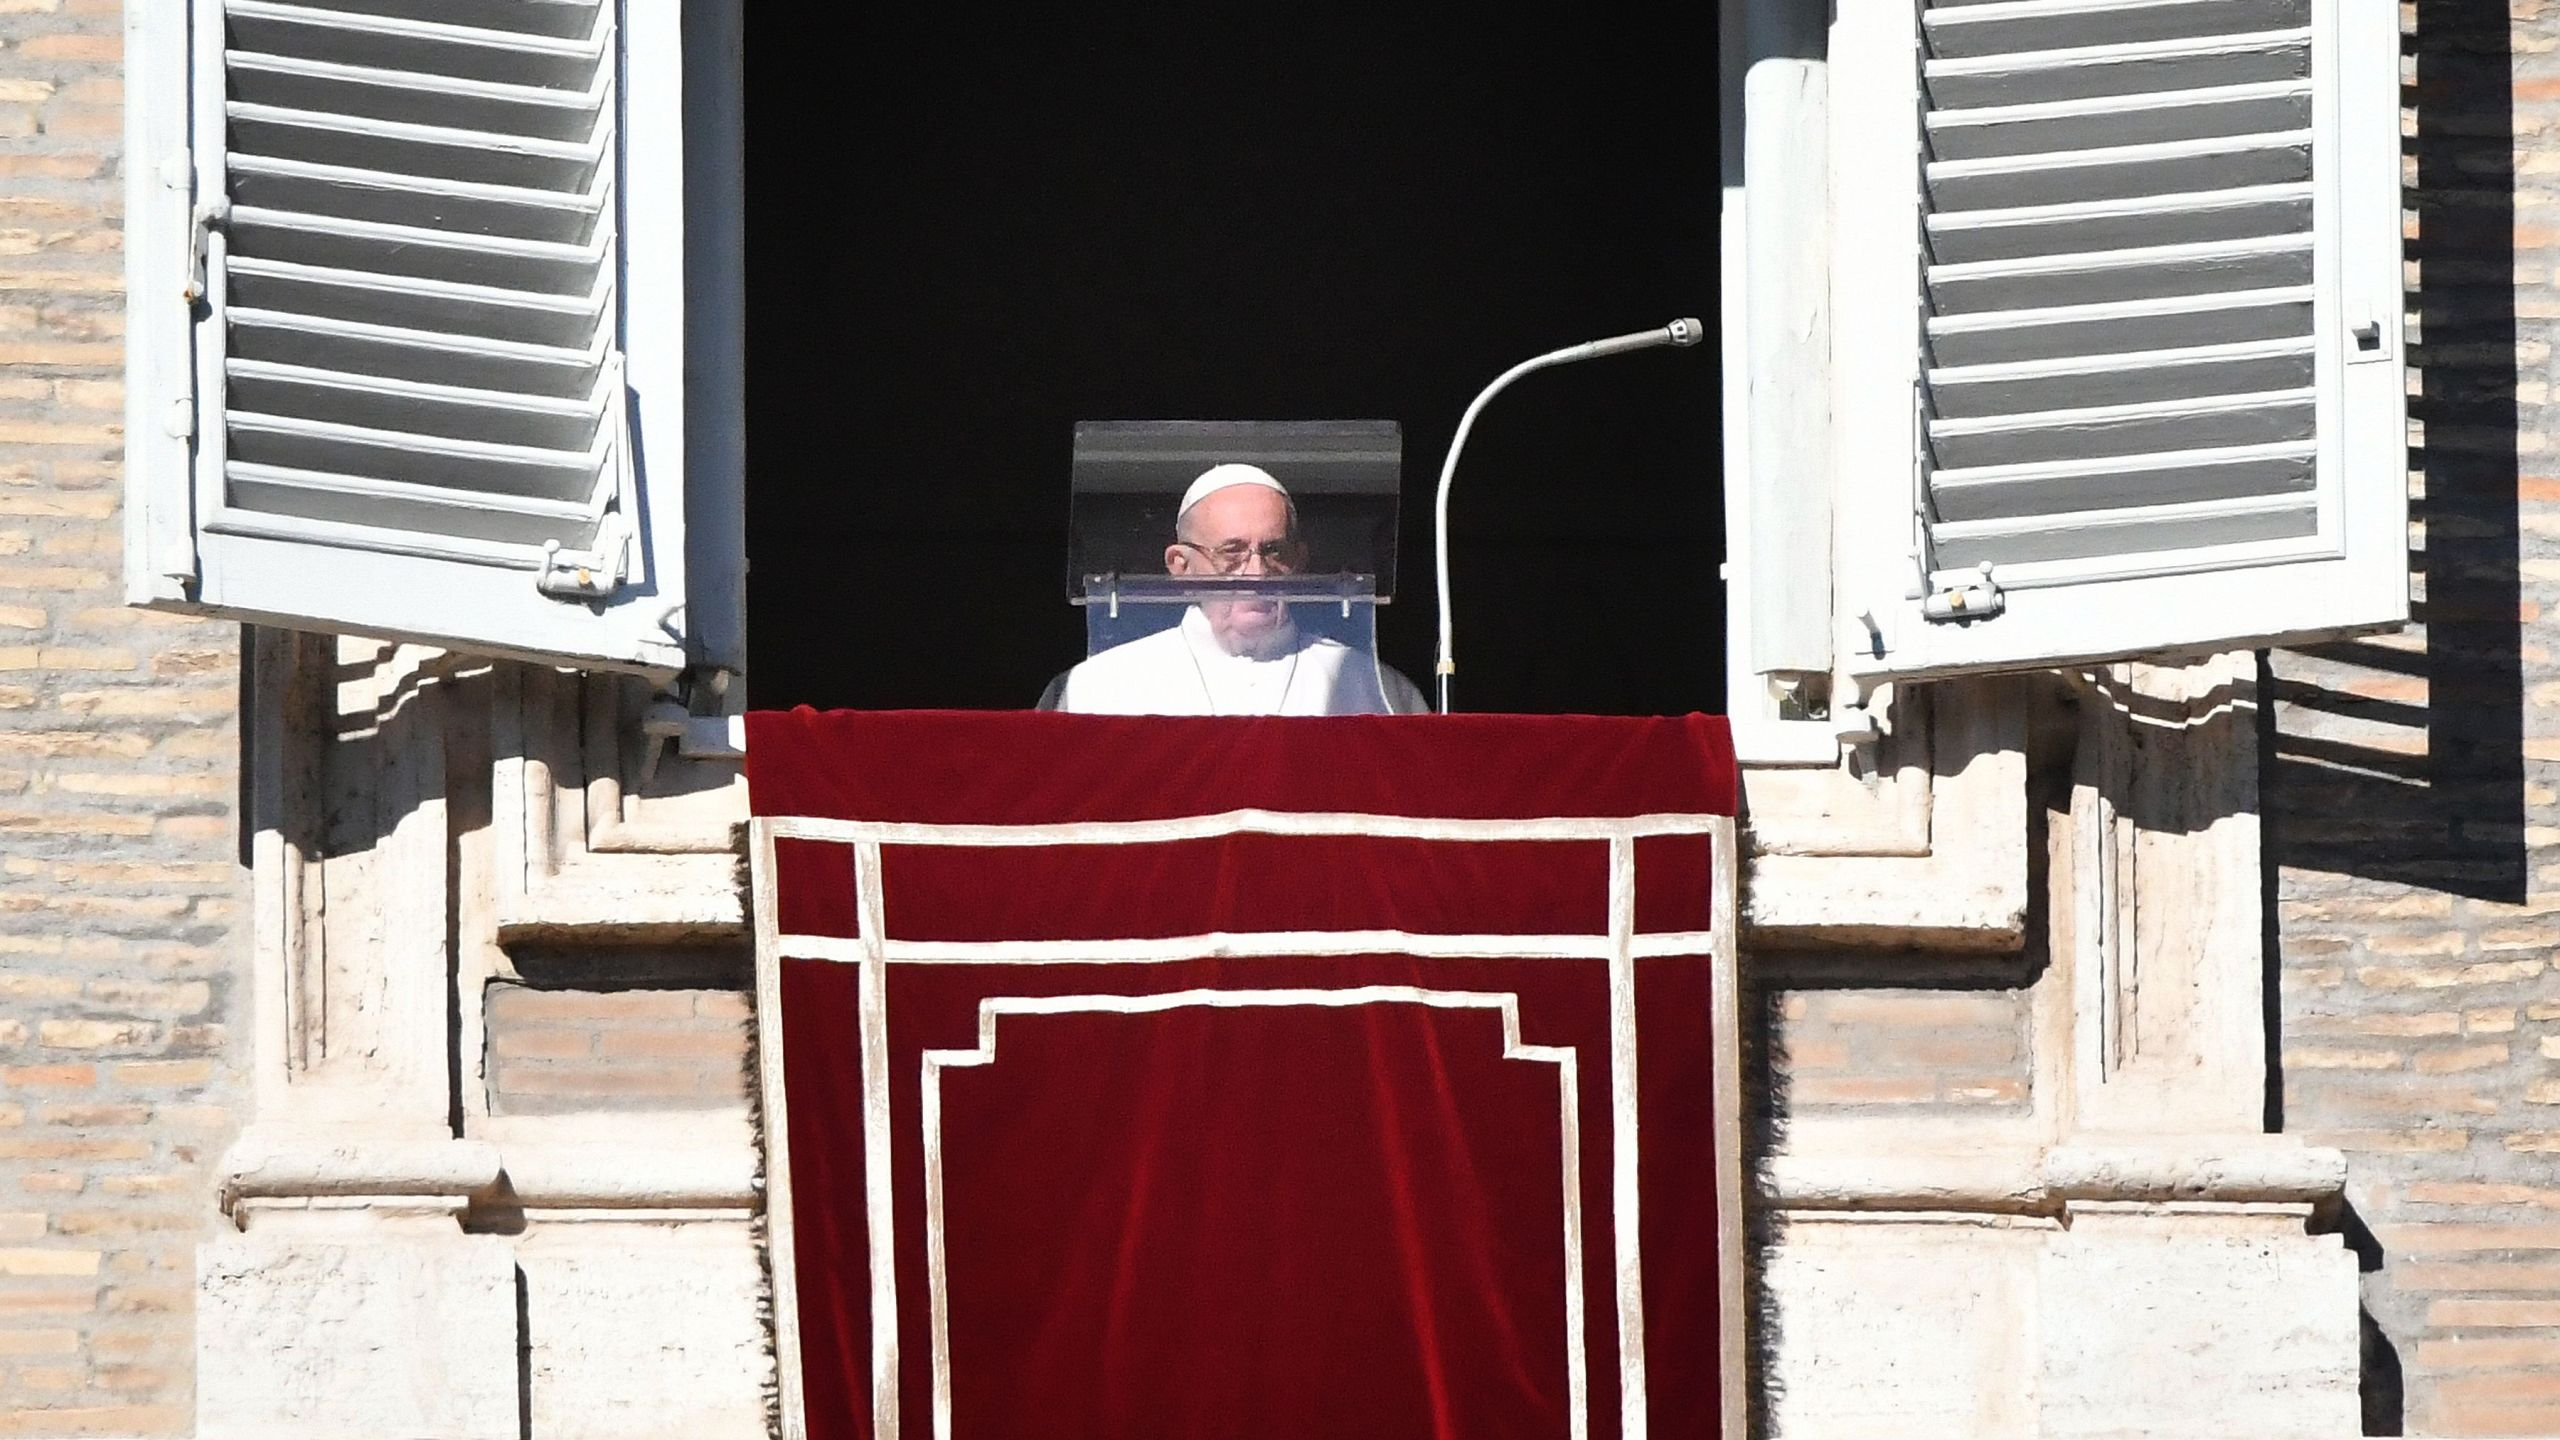 Pope Francis arrives to address the crowd from the window of the Apostolic palace overlooking St. Peter's square during the New Year Angelus prayer in the Vatican on January 1, 2019. (Credit: Alberto Pizzoli/AFP/AFP/Getty Images)